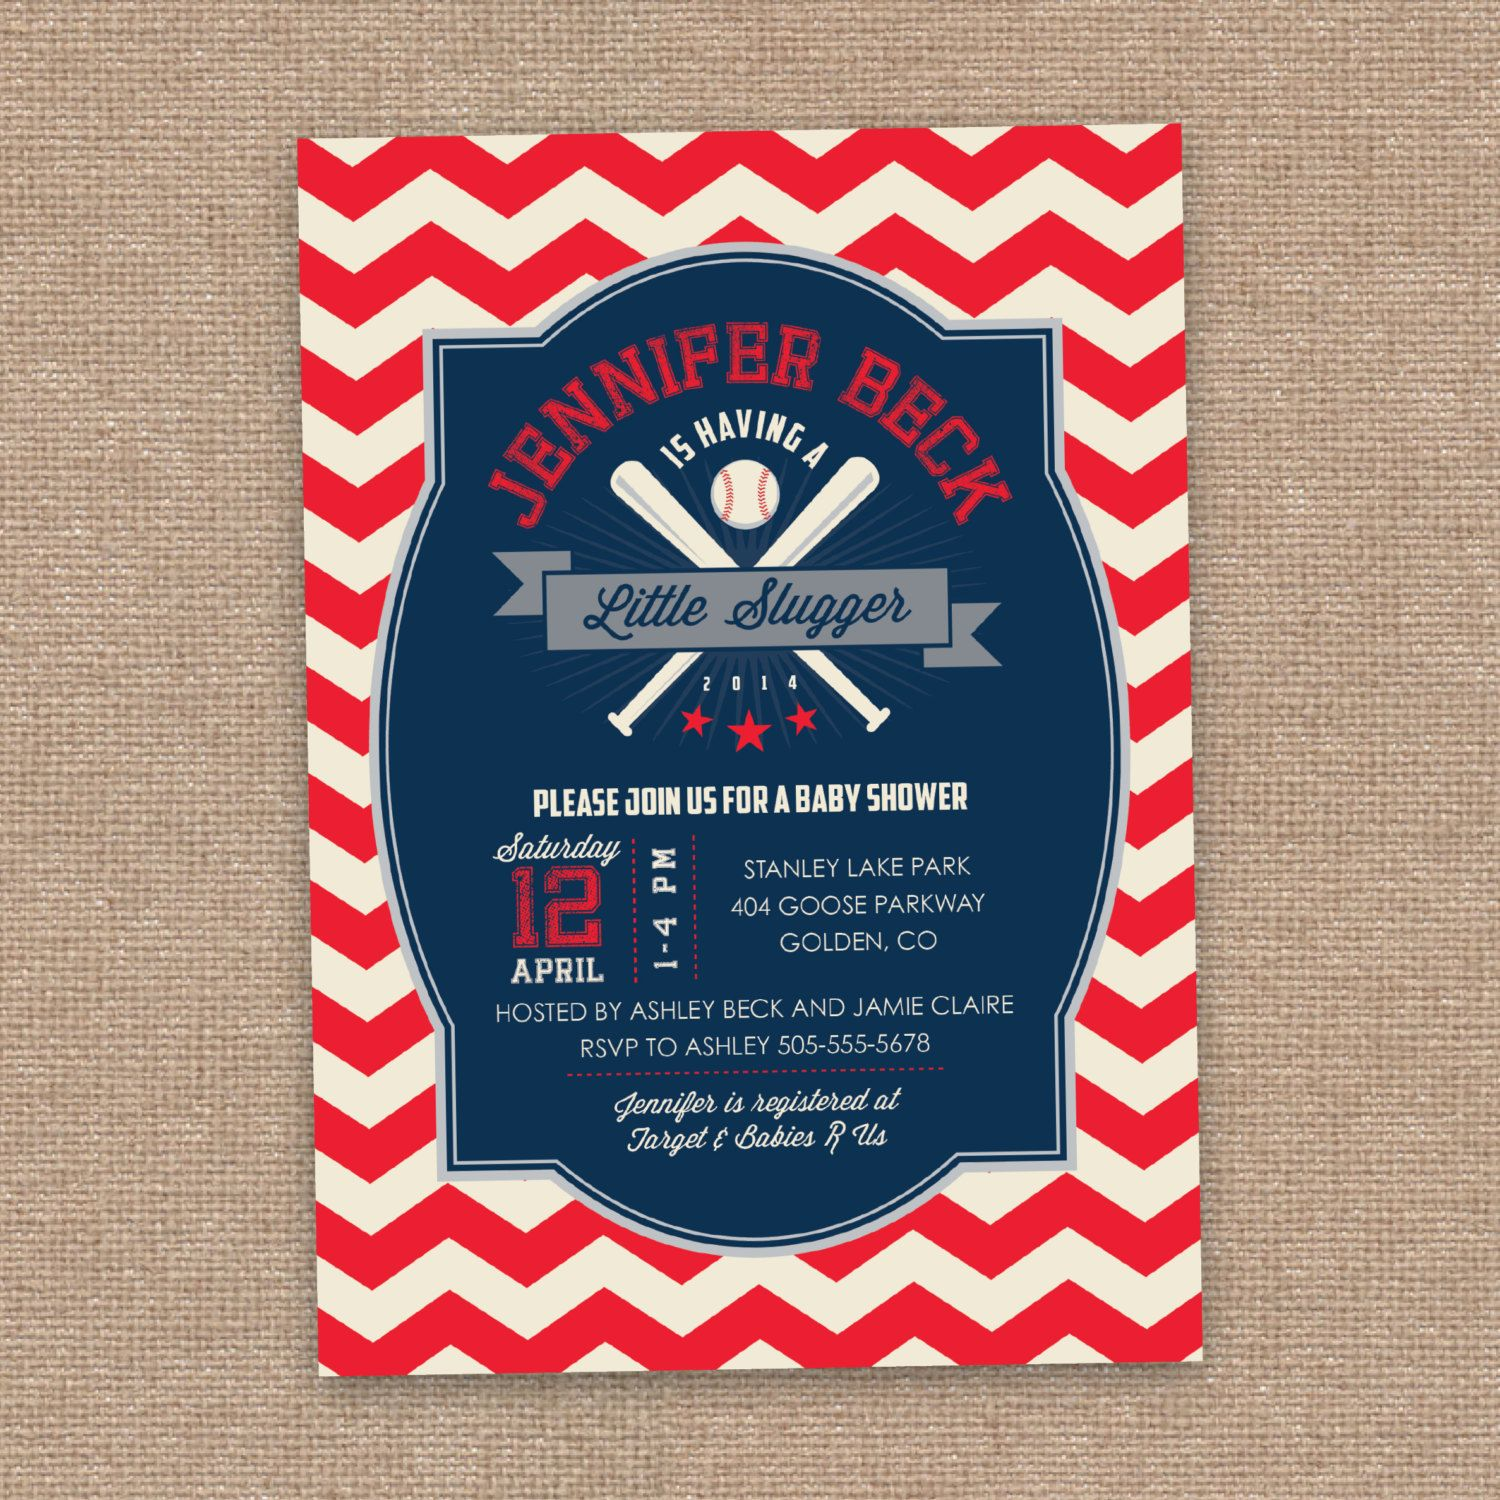 Baseball Baby Shower Invitation, Little Slugger, Vintage Sports, All-Star, Chevron, Fourth of July, Blue and Red, DIY Printable by jessicasinvites on Etsy